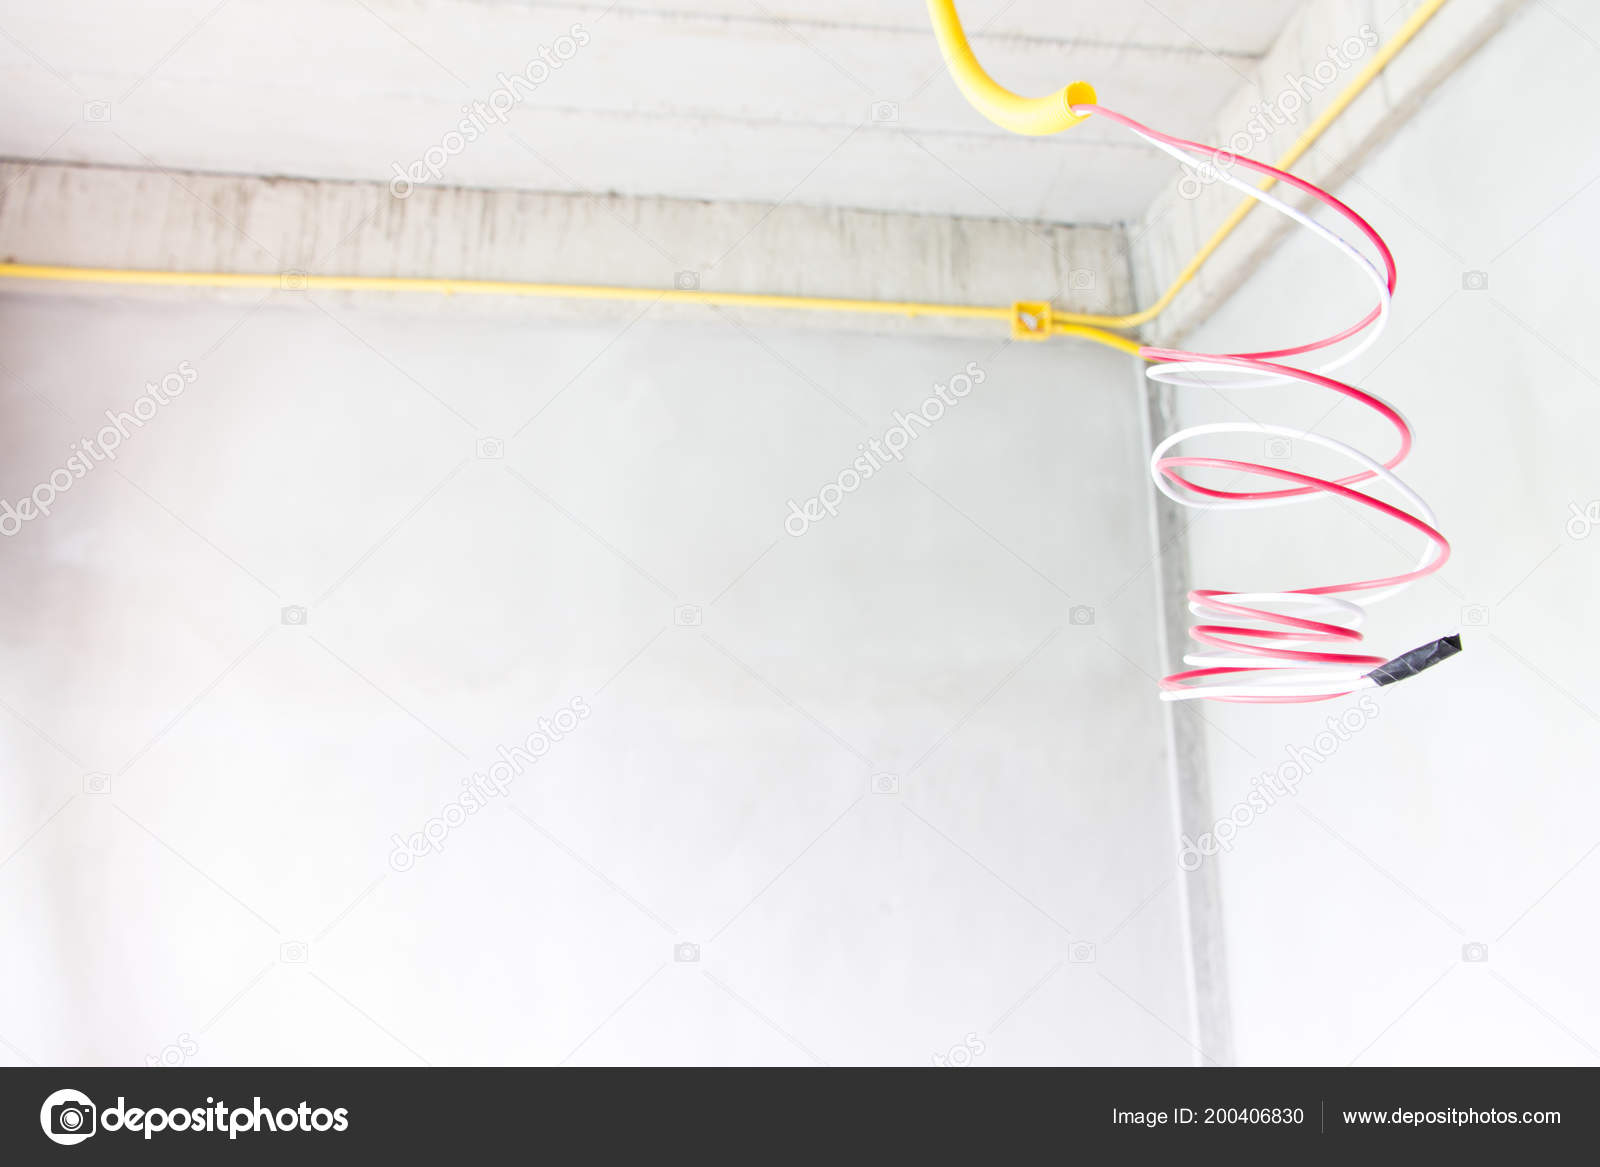 Astounding Piping Electric Cables Construction Stock Photo C Kasipat 200406830 Wiring Database Pengheclesi4X4Andersnl